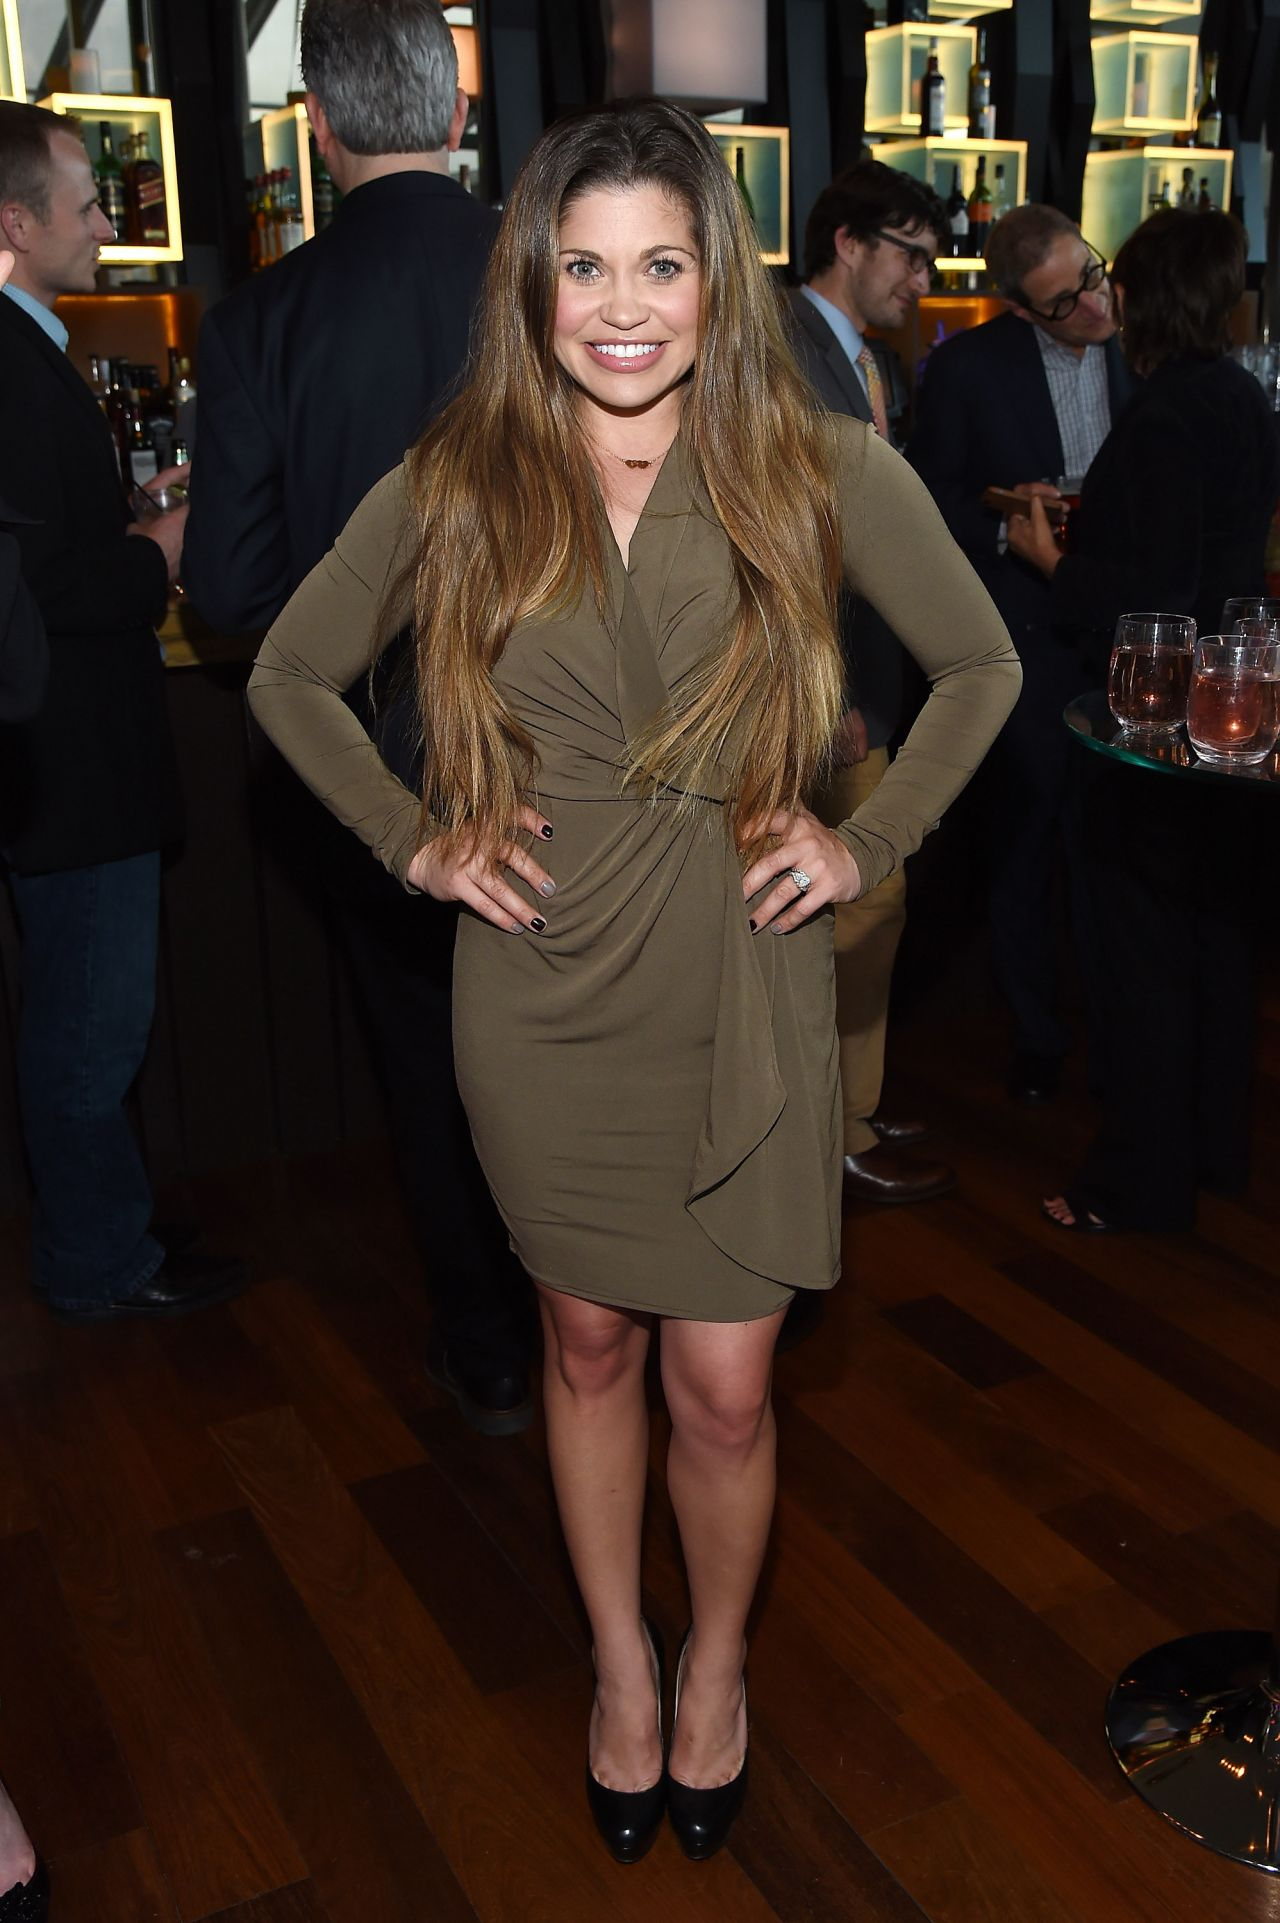 Danielle Fishel - TIME Inc.